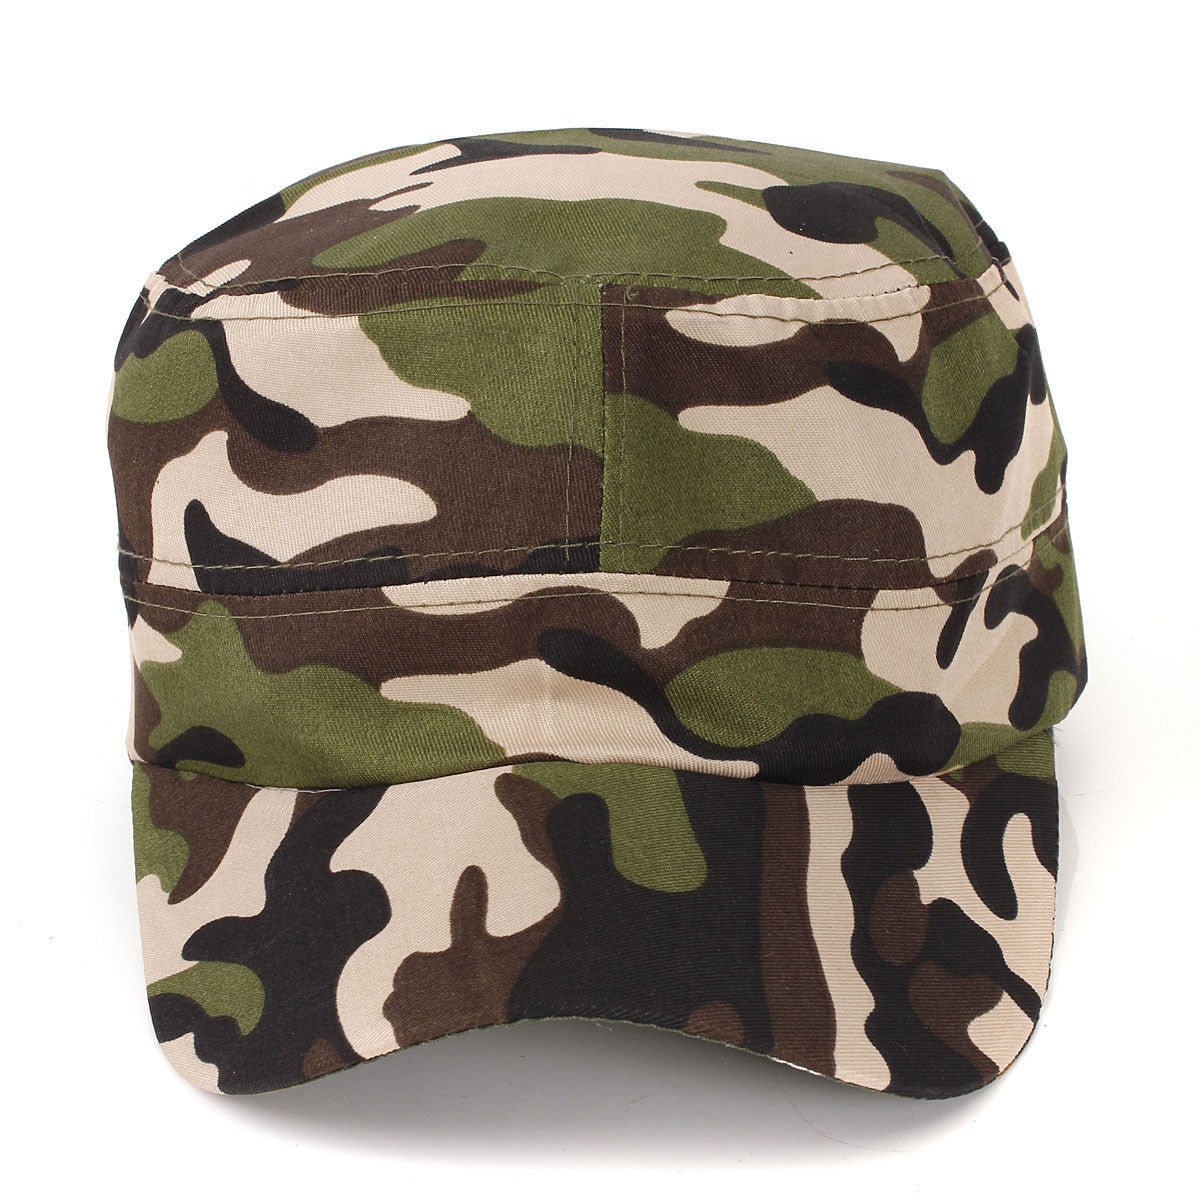 95b6a338a08 Hot Sale Baseball Unisex Fashionable Men Women Sun Visor Army Camouflage  Military Soldier Combat Hat Cotton Sport Cap